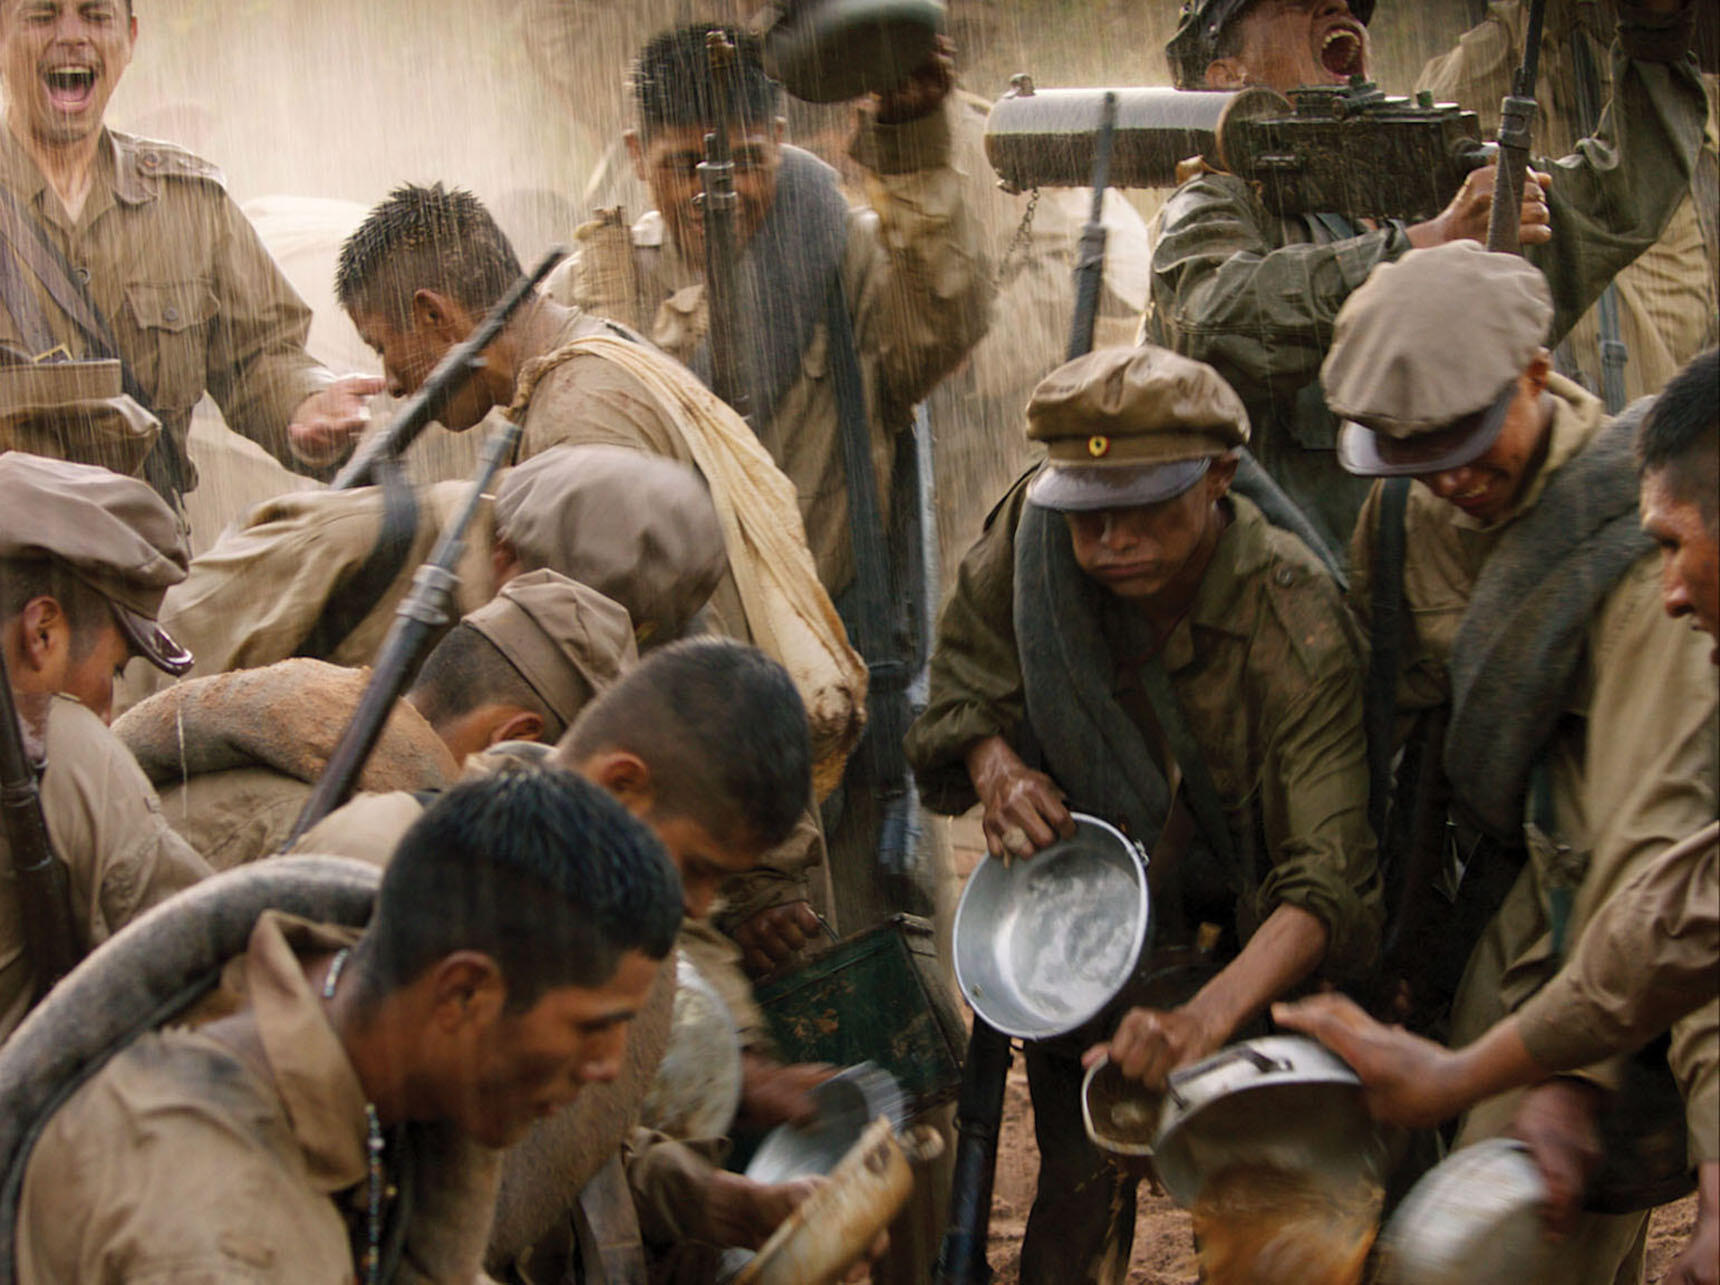 """A still from """"Chaco"""" shows soldiers' delirium and euphoria when it finally rains — no one knows how to quench their thirst. (Image courtesy of Color_Monster, Pasto, and Murillo Cine.)"""